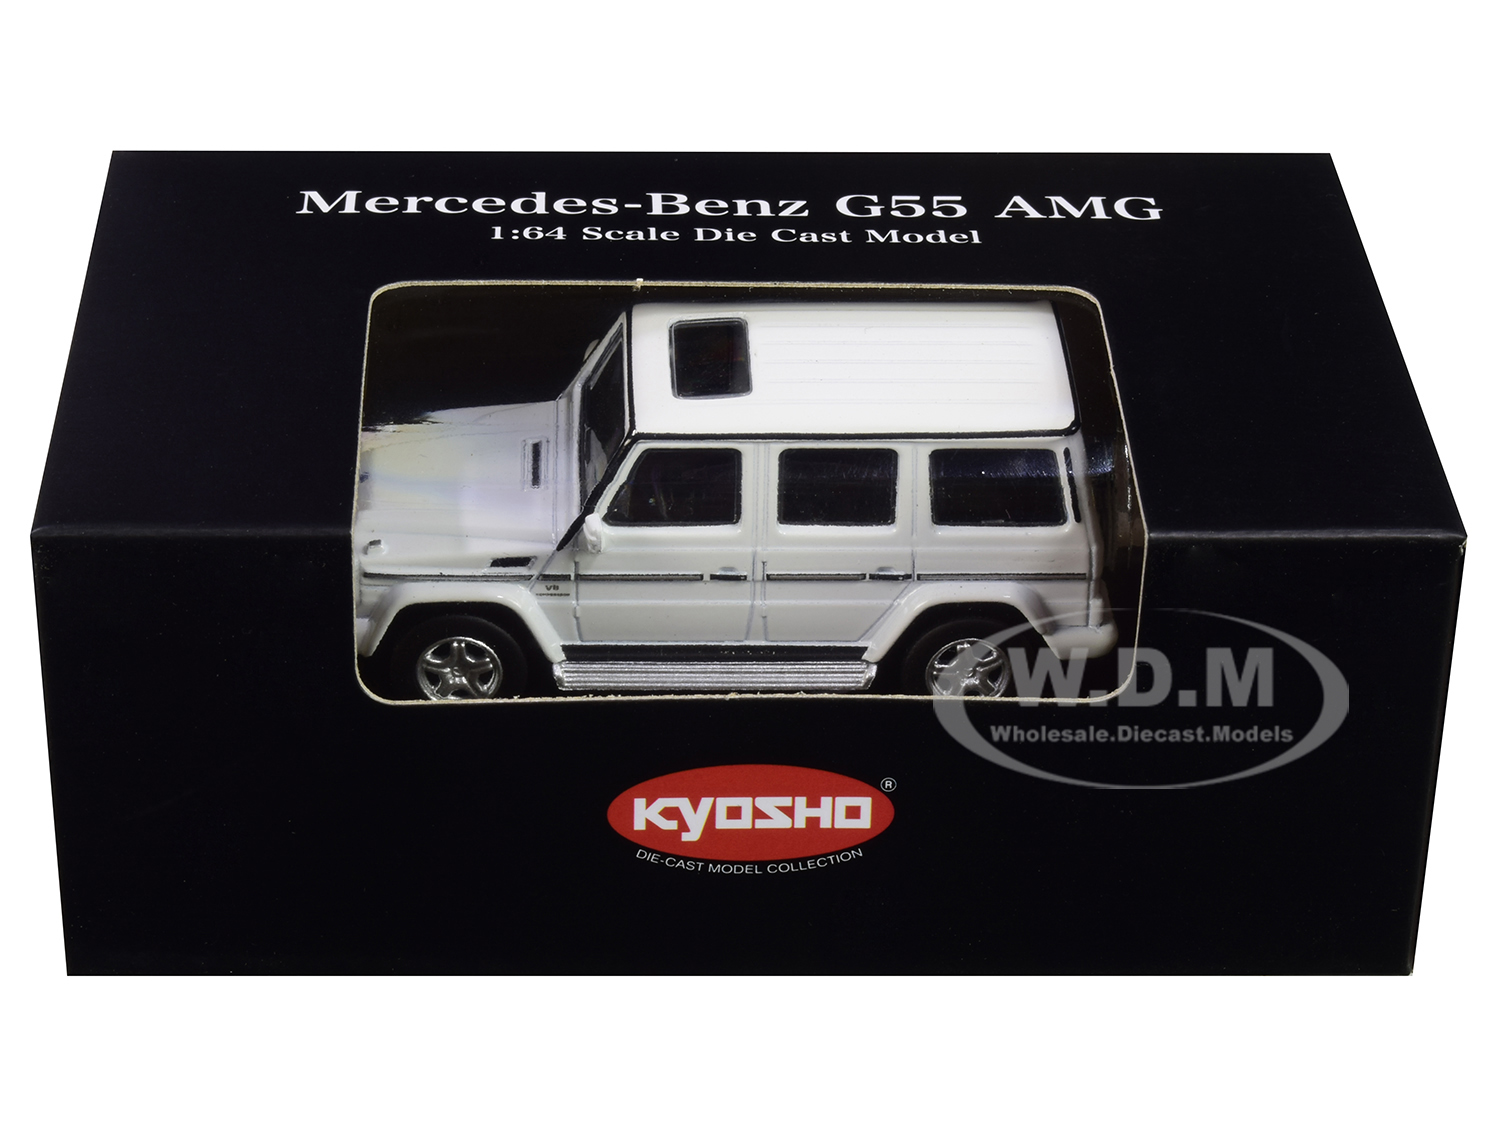 Mercedes Benz G55 AMG White 1/64 Diecast Model Car by Kyosho